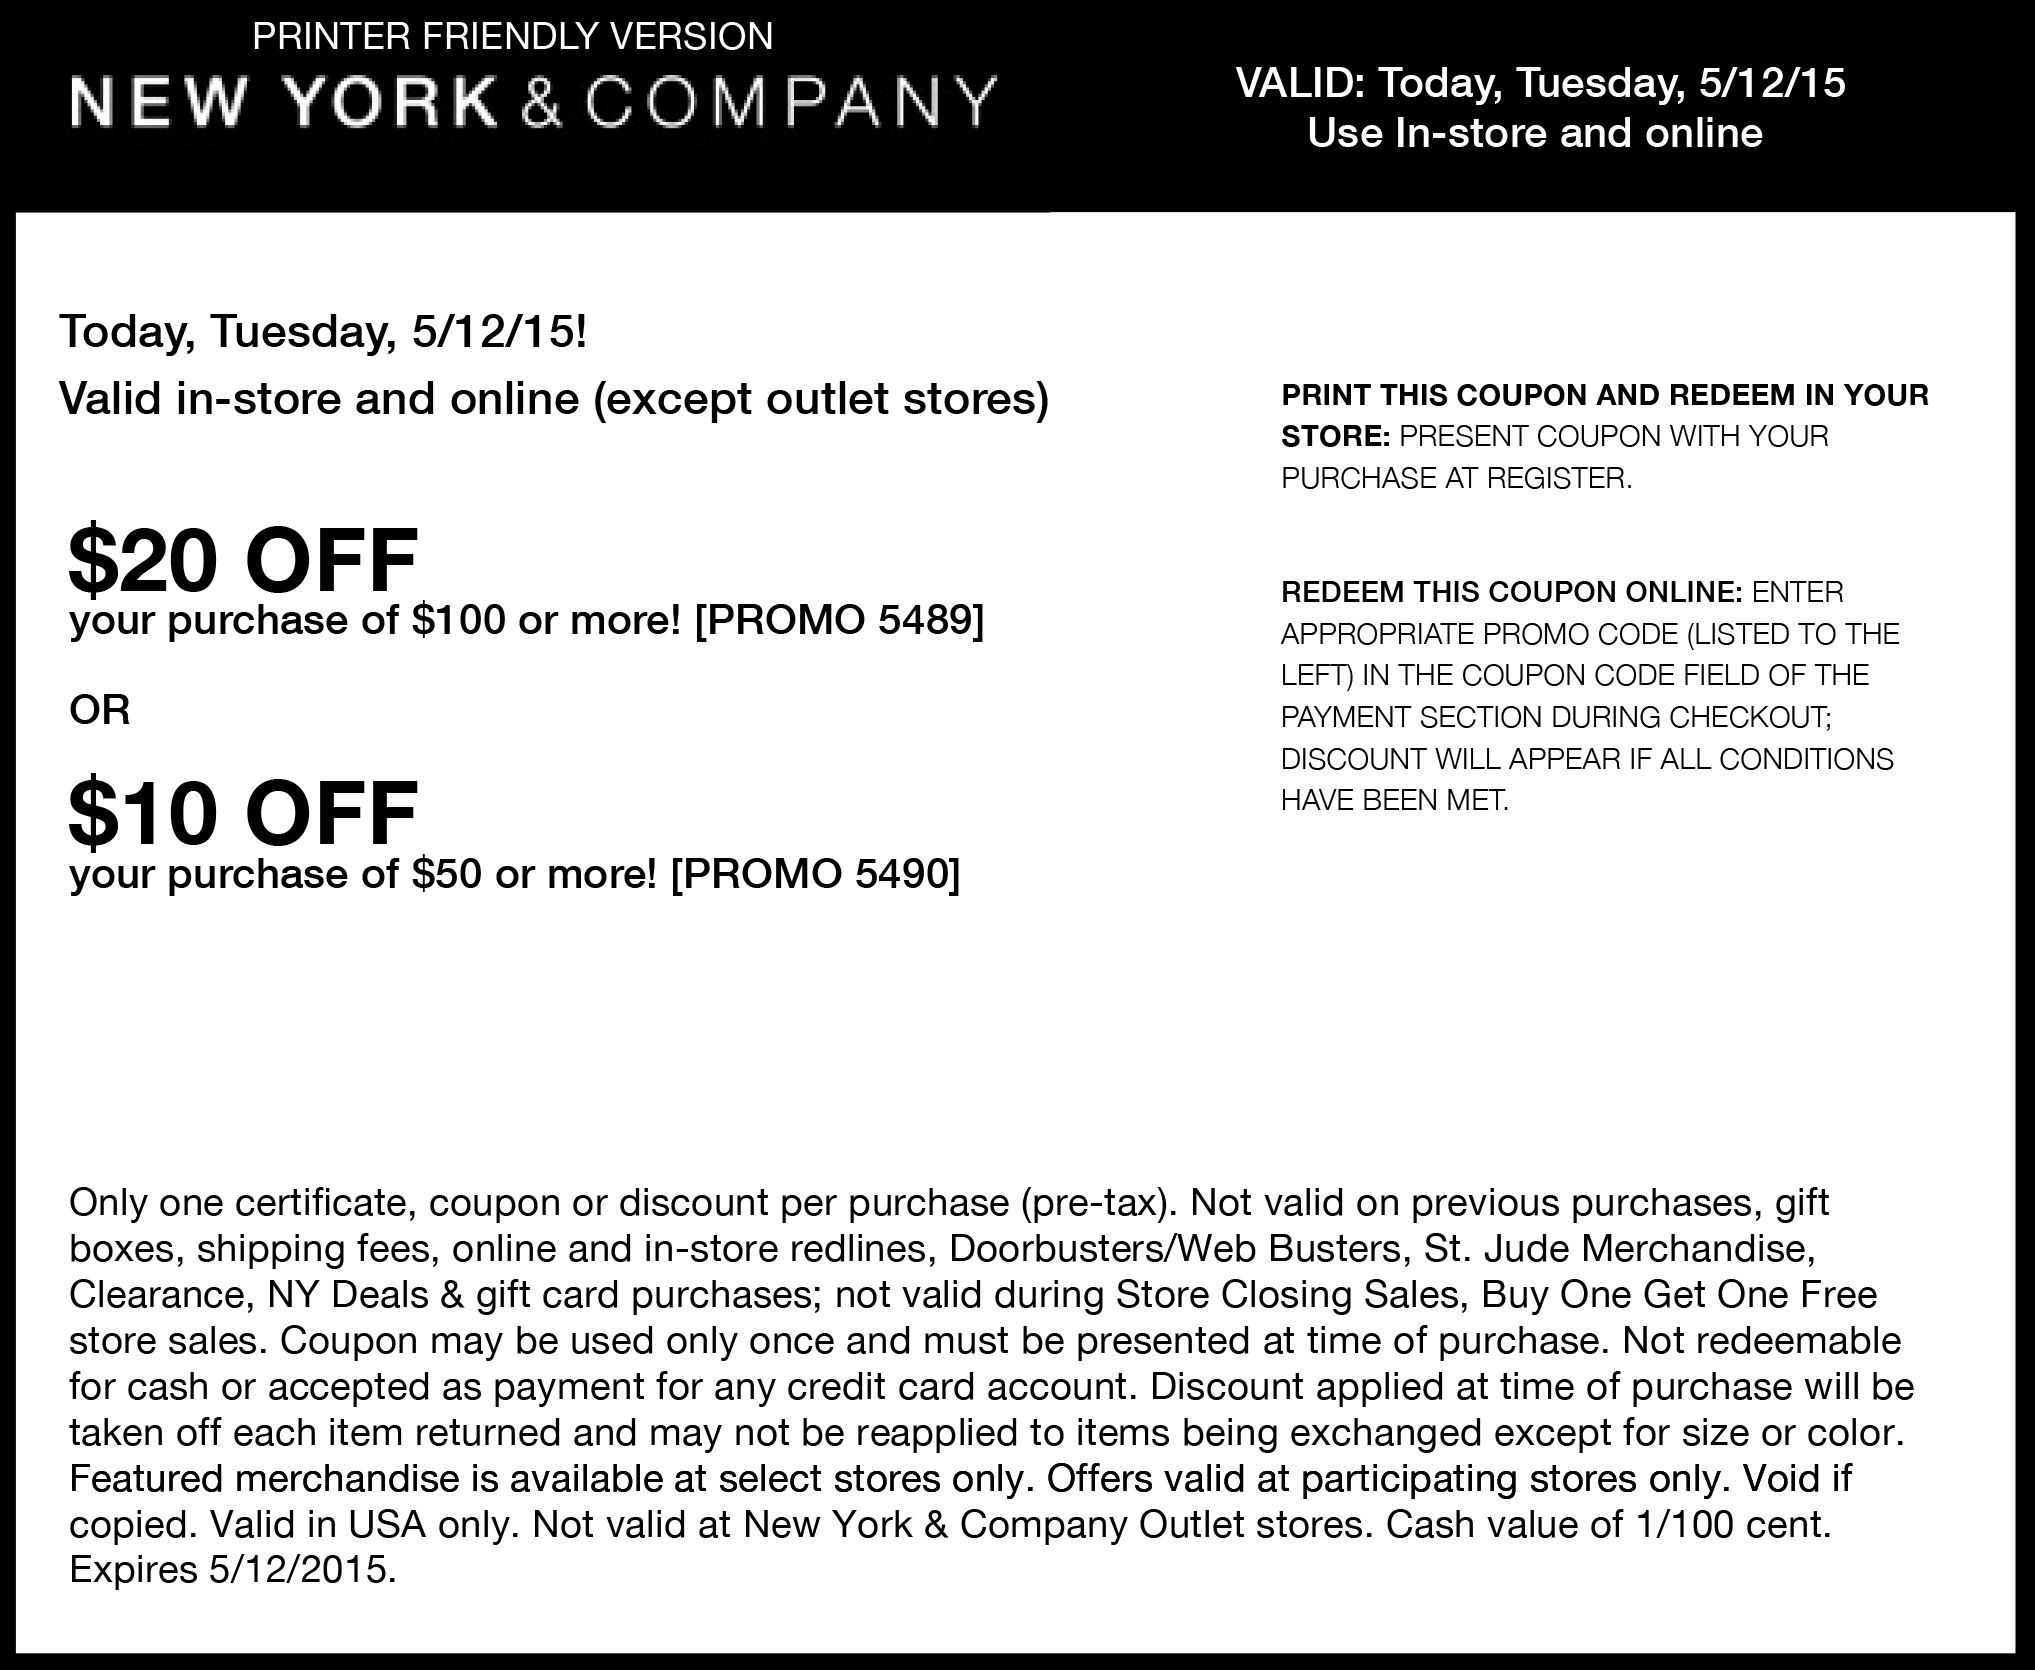 New York & Company Coupon March 2018 $10 off $50 & more today at New York & Company, or online via promo code 5490